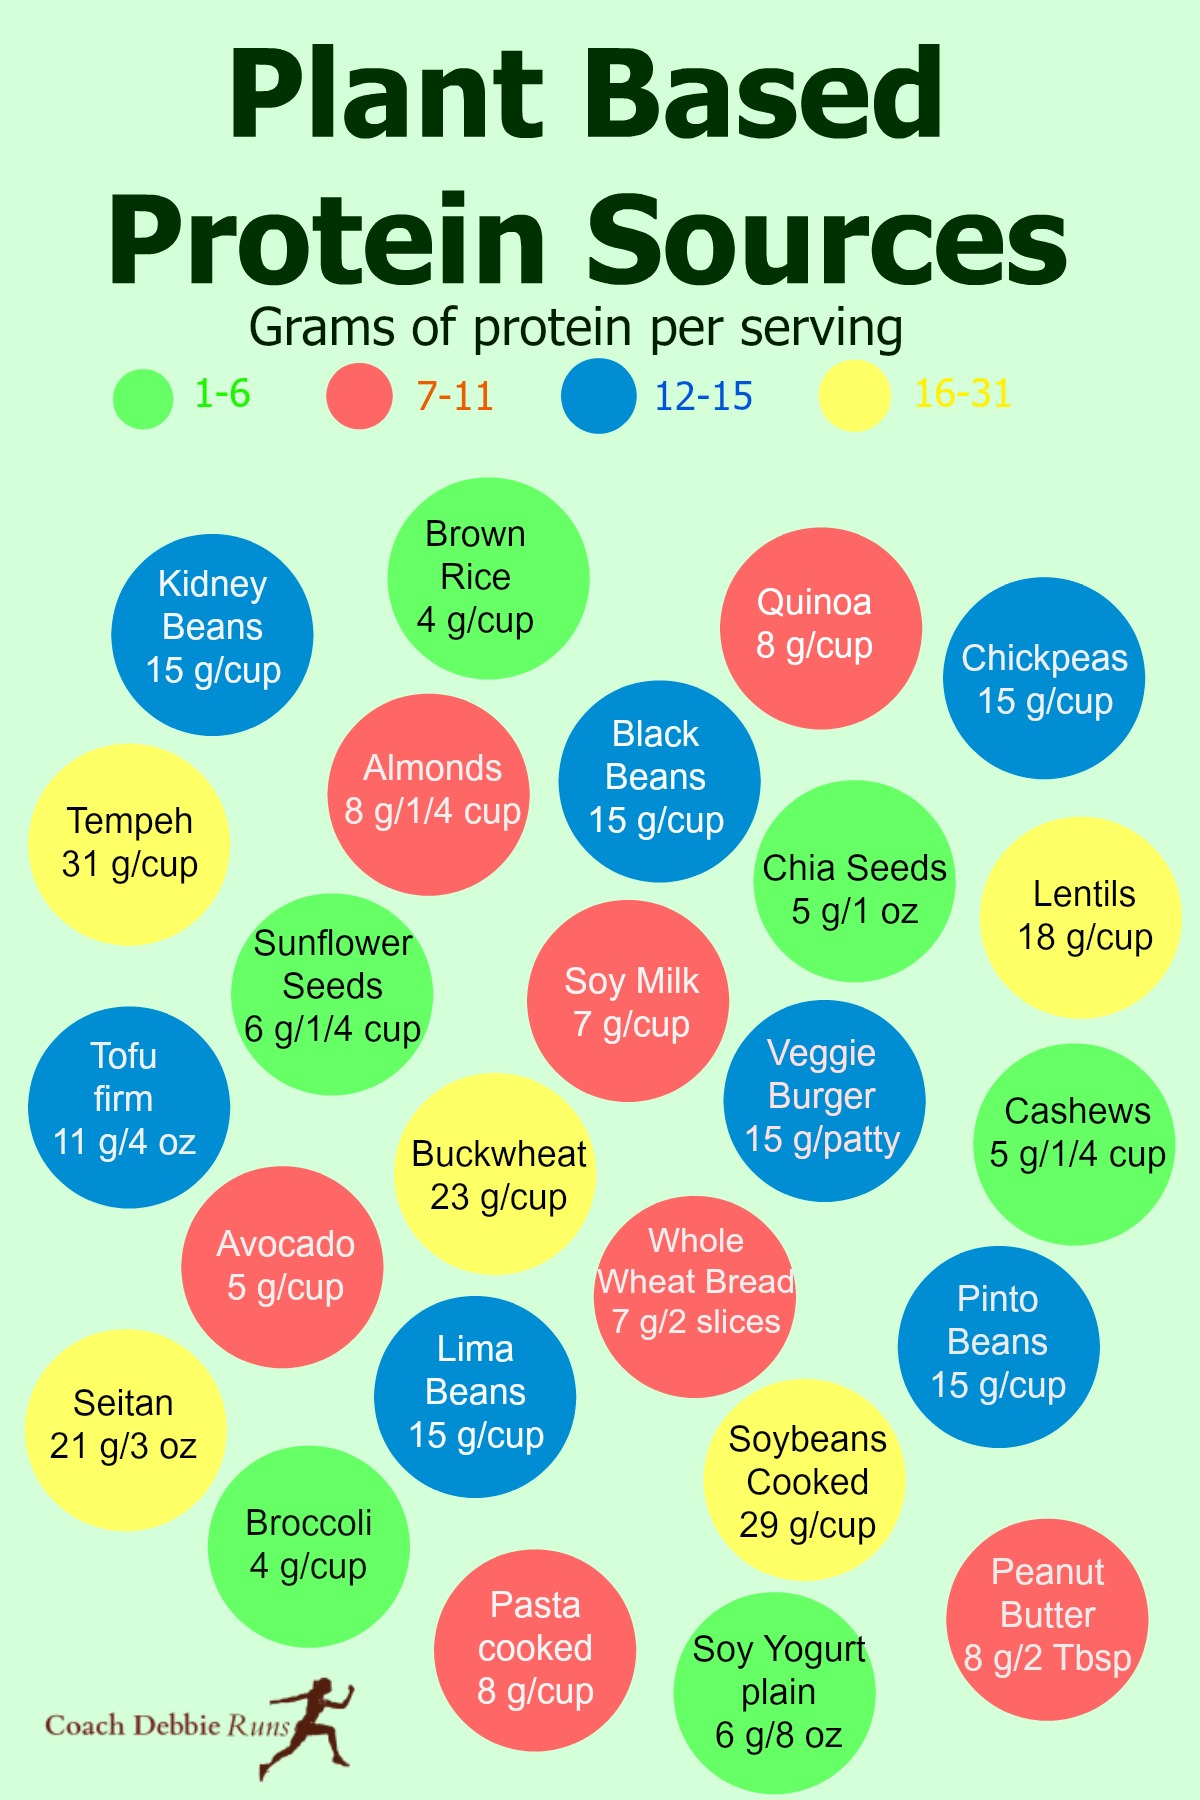 Where do vegans get their protein? Everywhere! This infographic shows many excellent sources of plant-based protein.